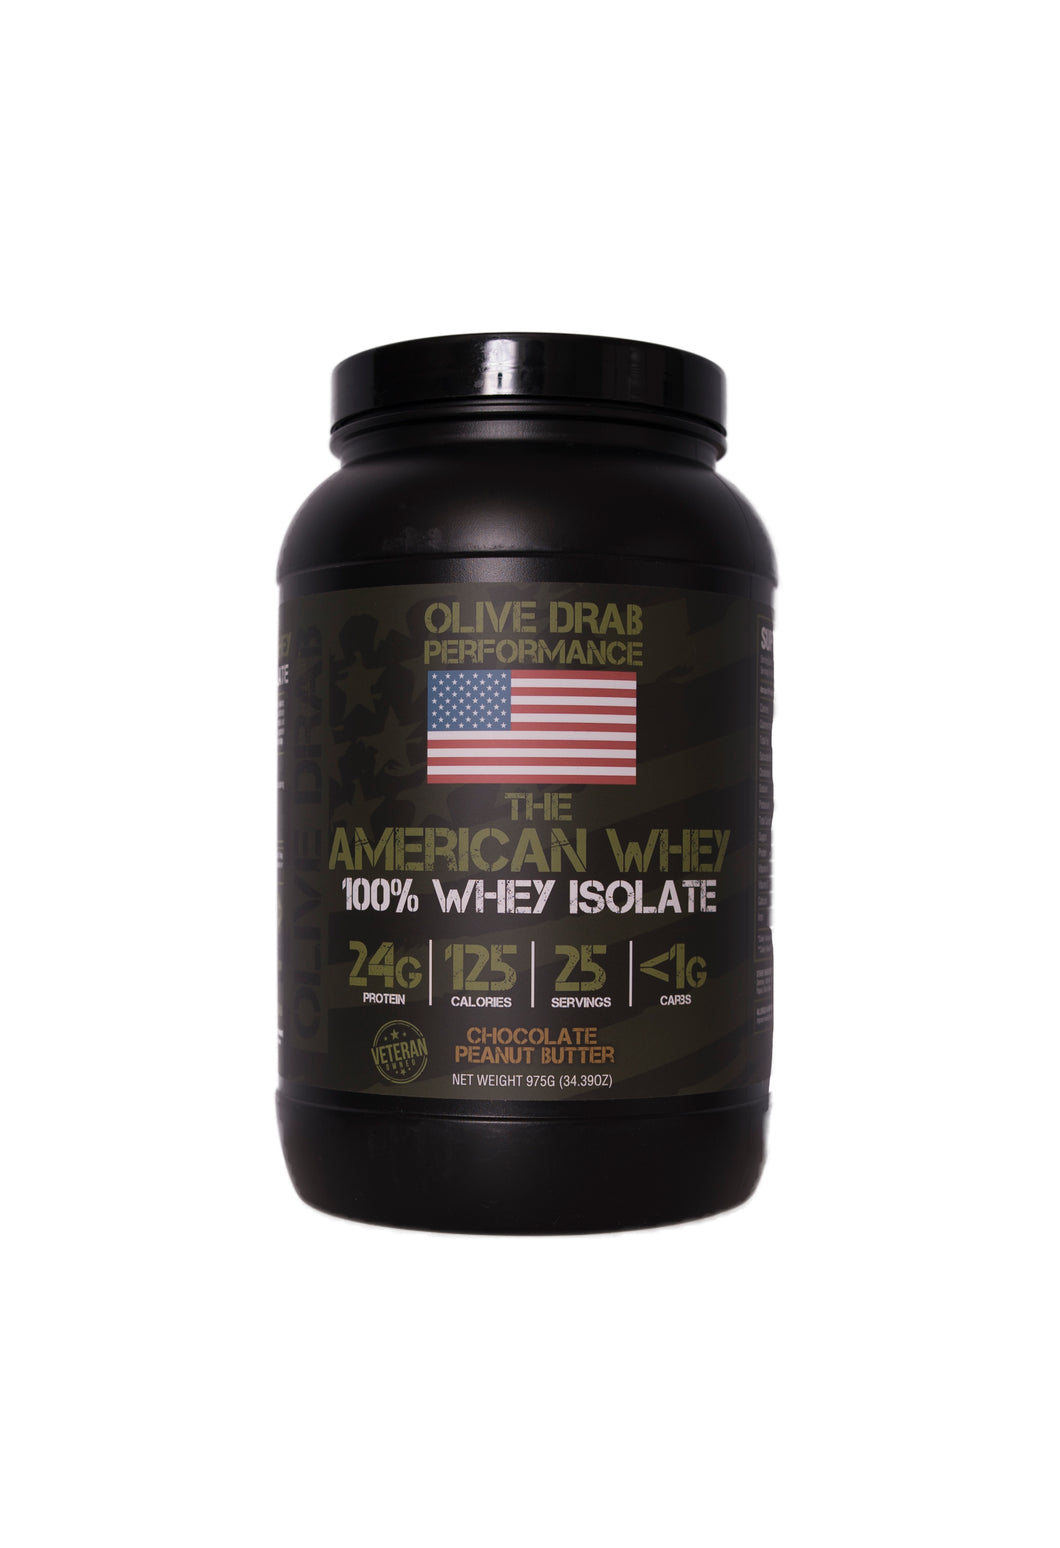 The American Whey: Chocolate Peanut Butter